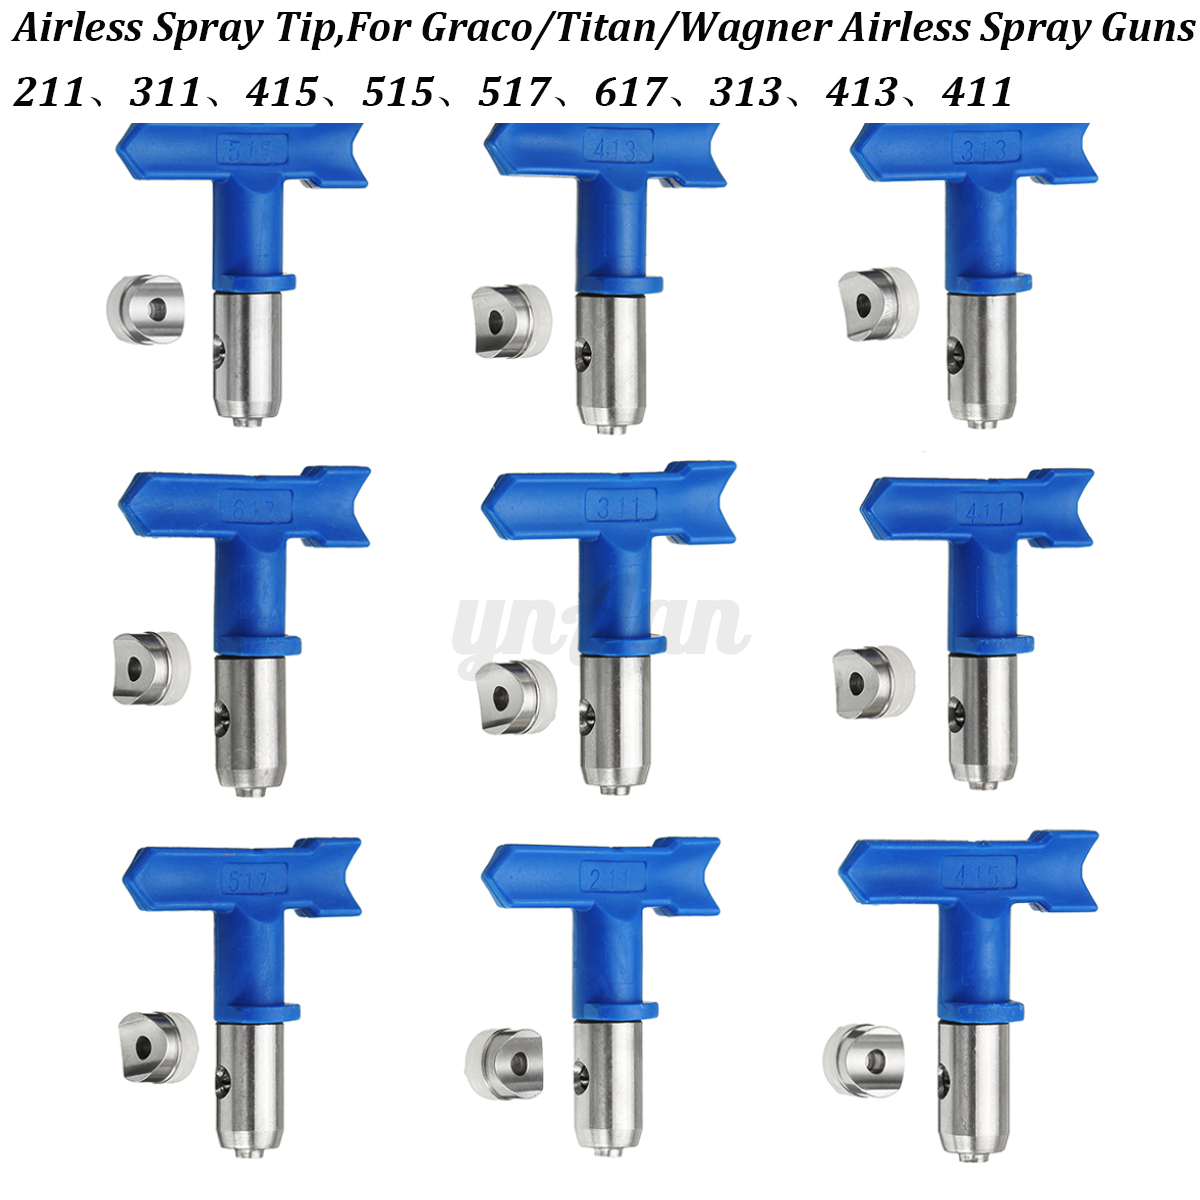 airless pulv risation pistolet de peinture buse spray gun bleu universel ebay. Black Bedroom Furniture Sets. Home Design Ideas